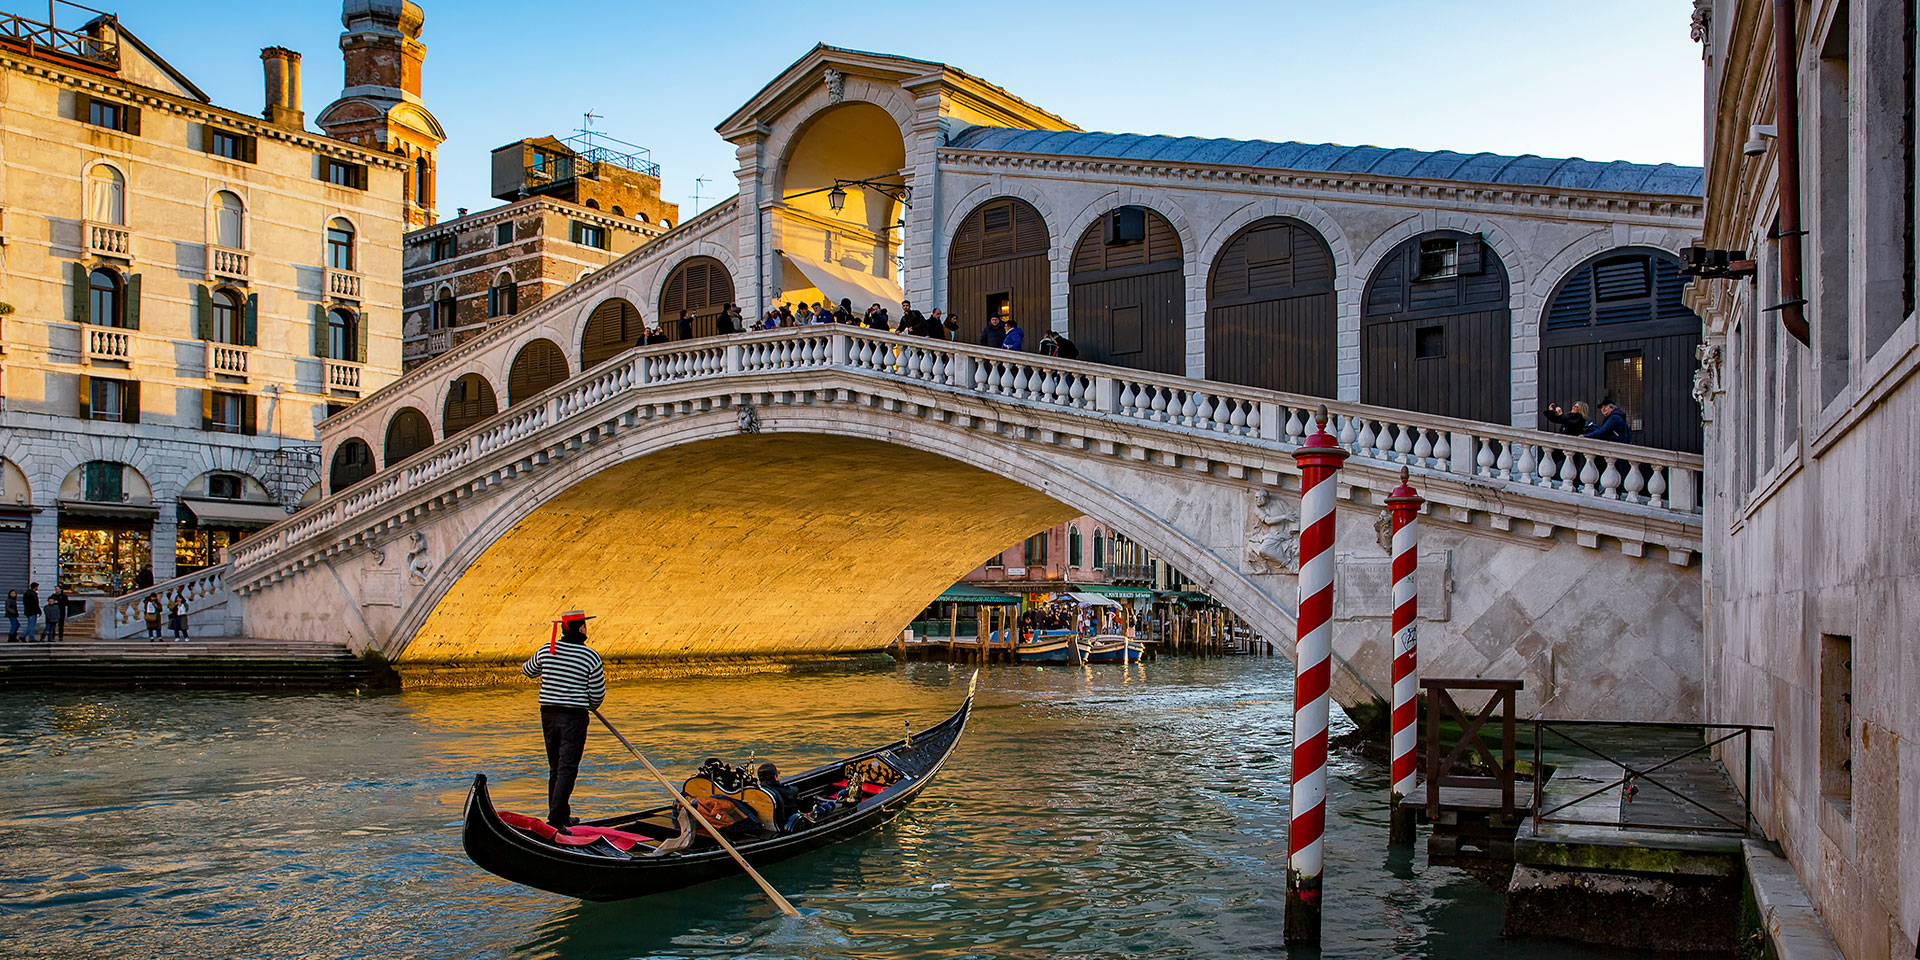 The Rialto Bridge. (Photo: Getty Images)